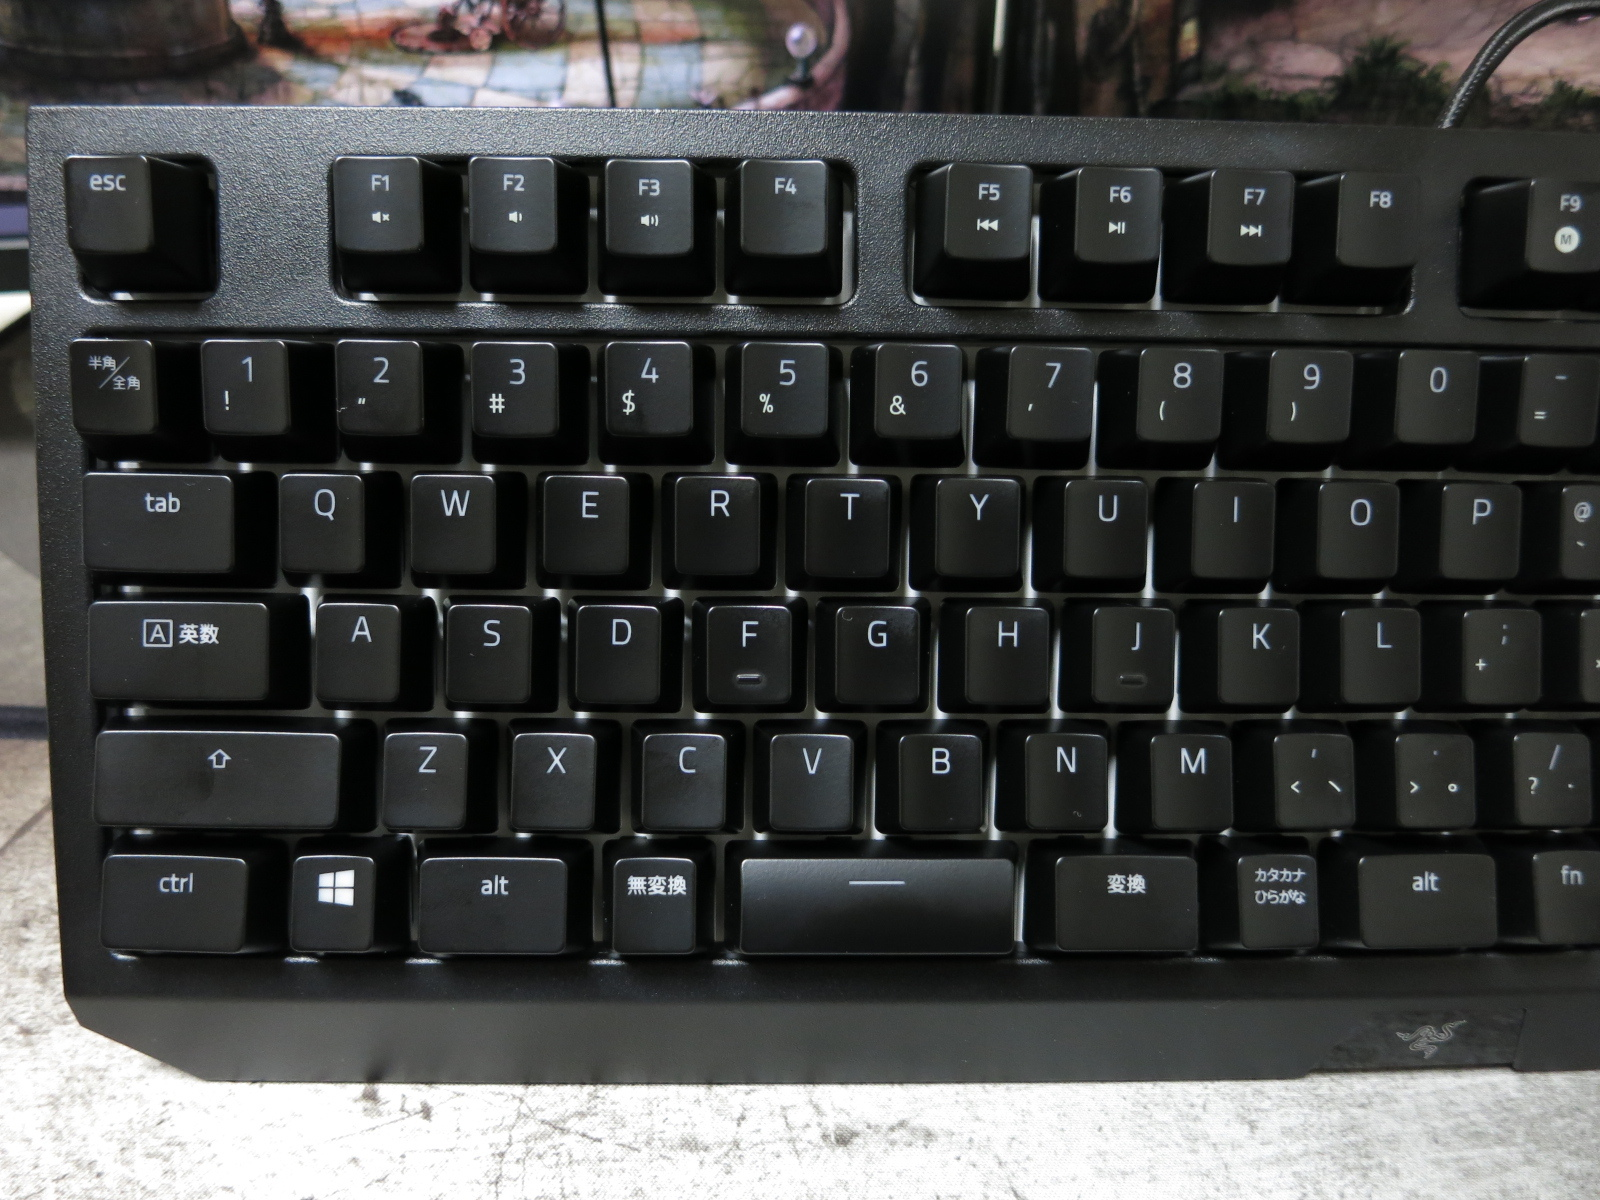 Razer_BlackWidow_2019_17.jpg